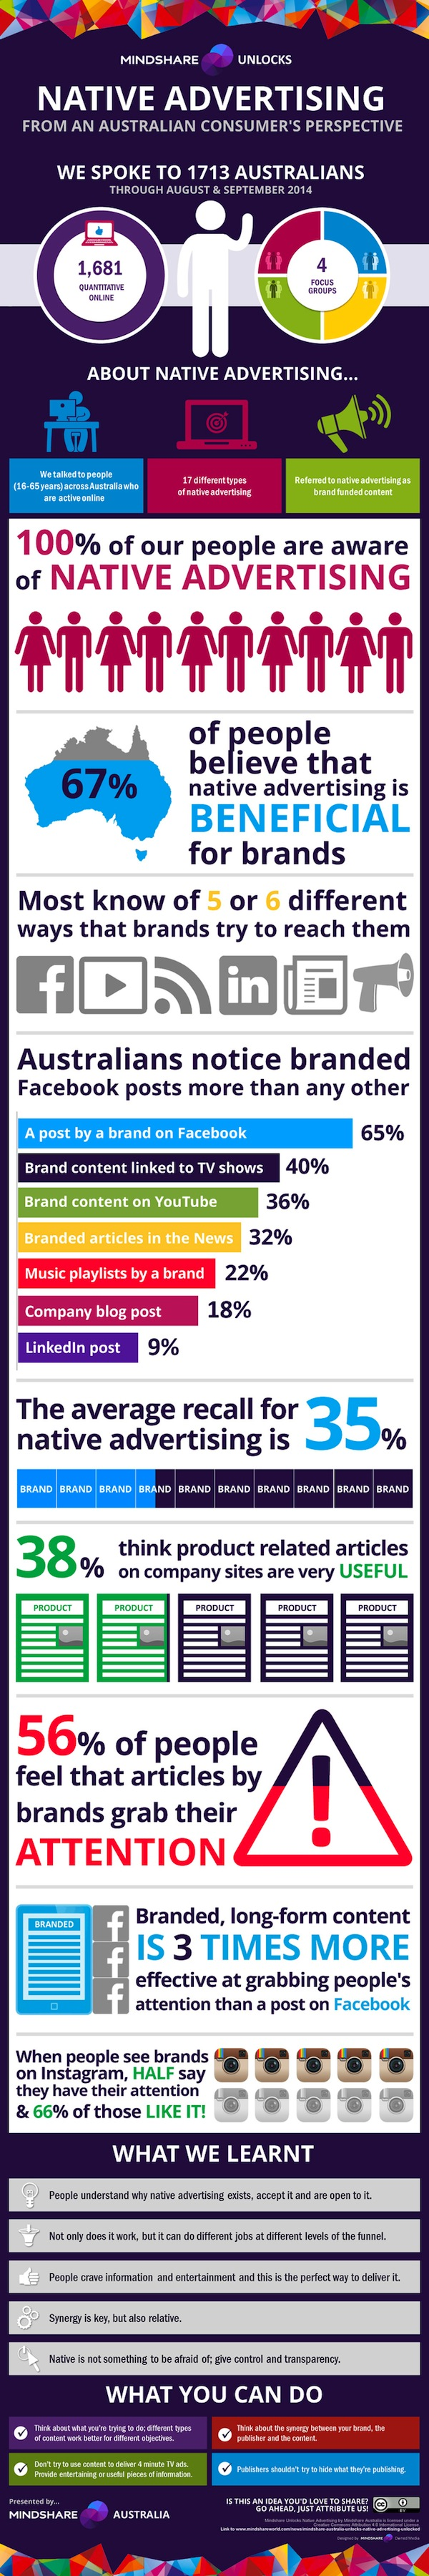 Mindshare-Unlocks-Native-Advertising-2014-Infographic